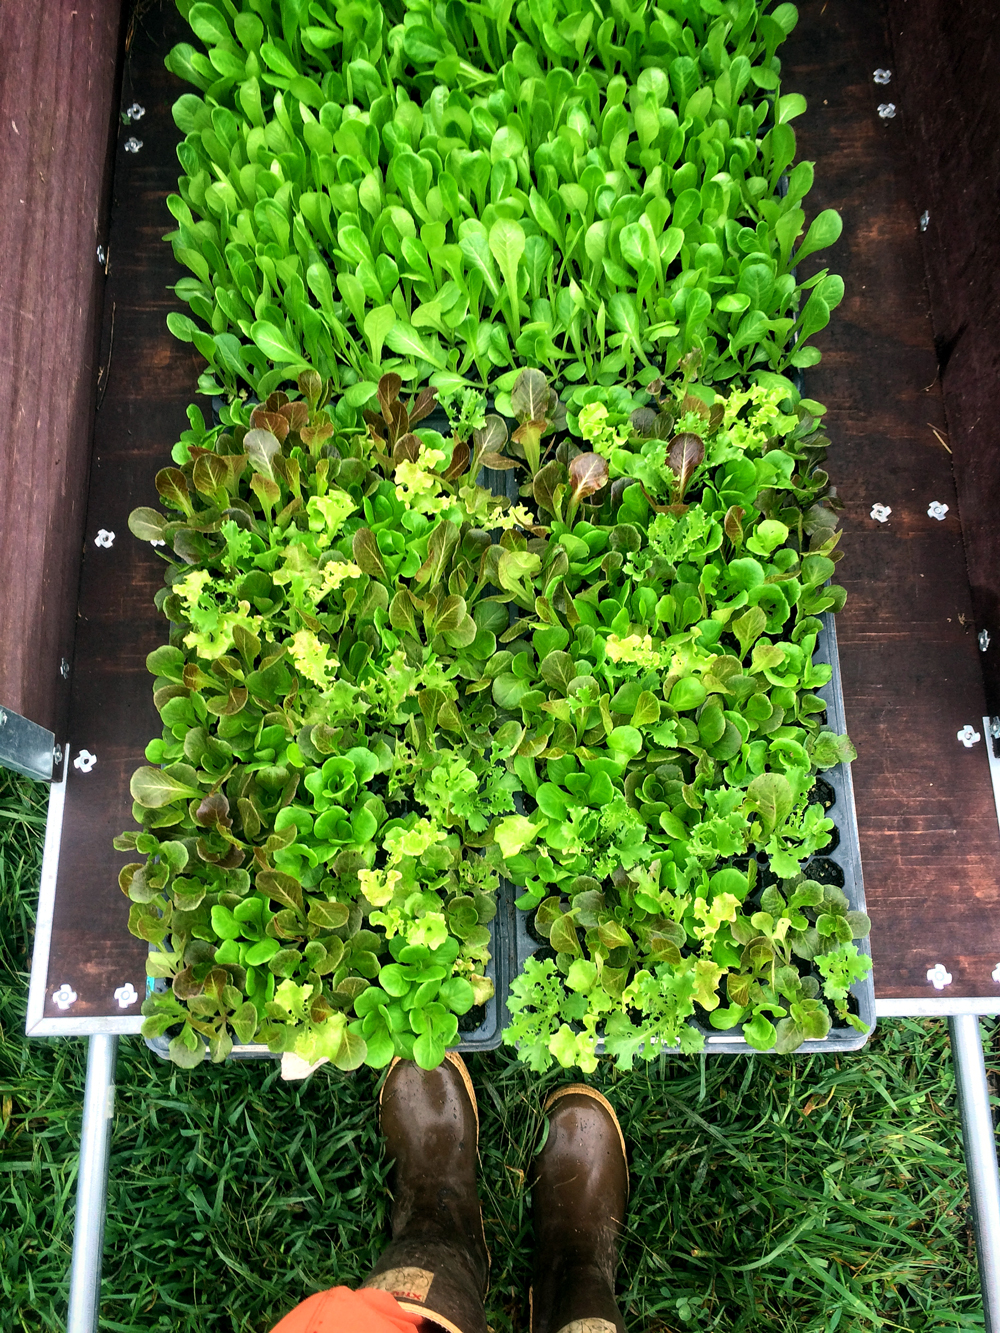 lettuce being transported